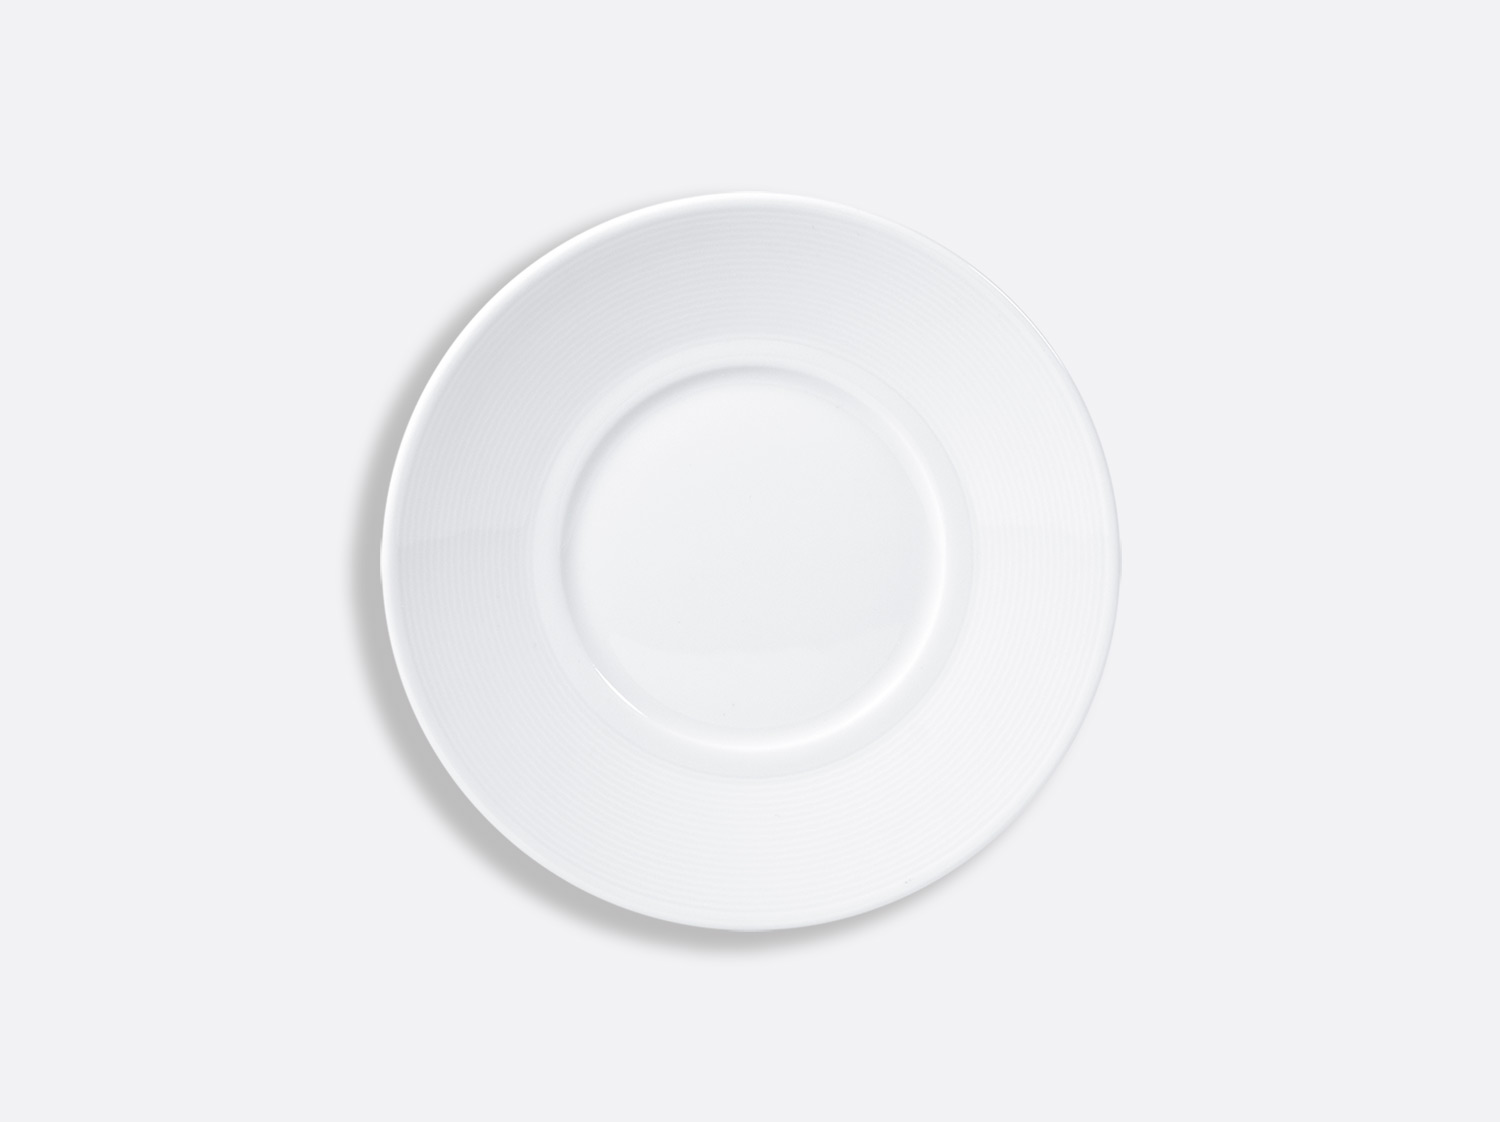 Assiette plate 16 cm en porcelaine de la collection ATLANTIDE BLANC Bernardaud